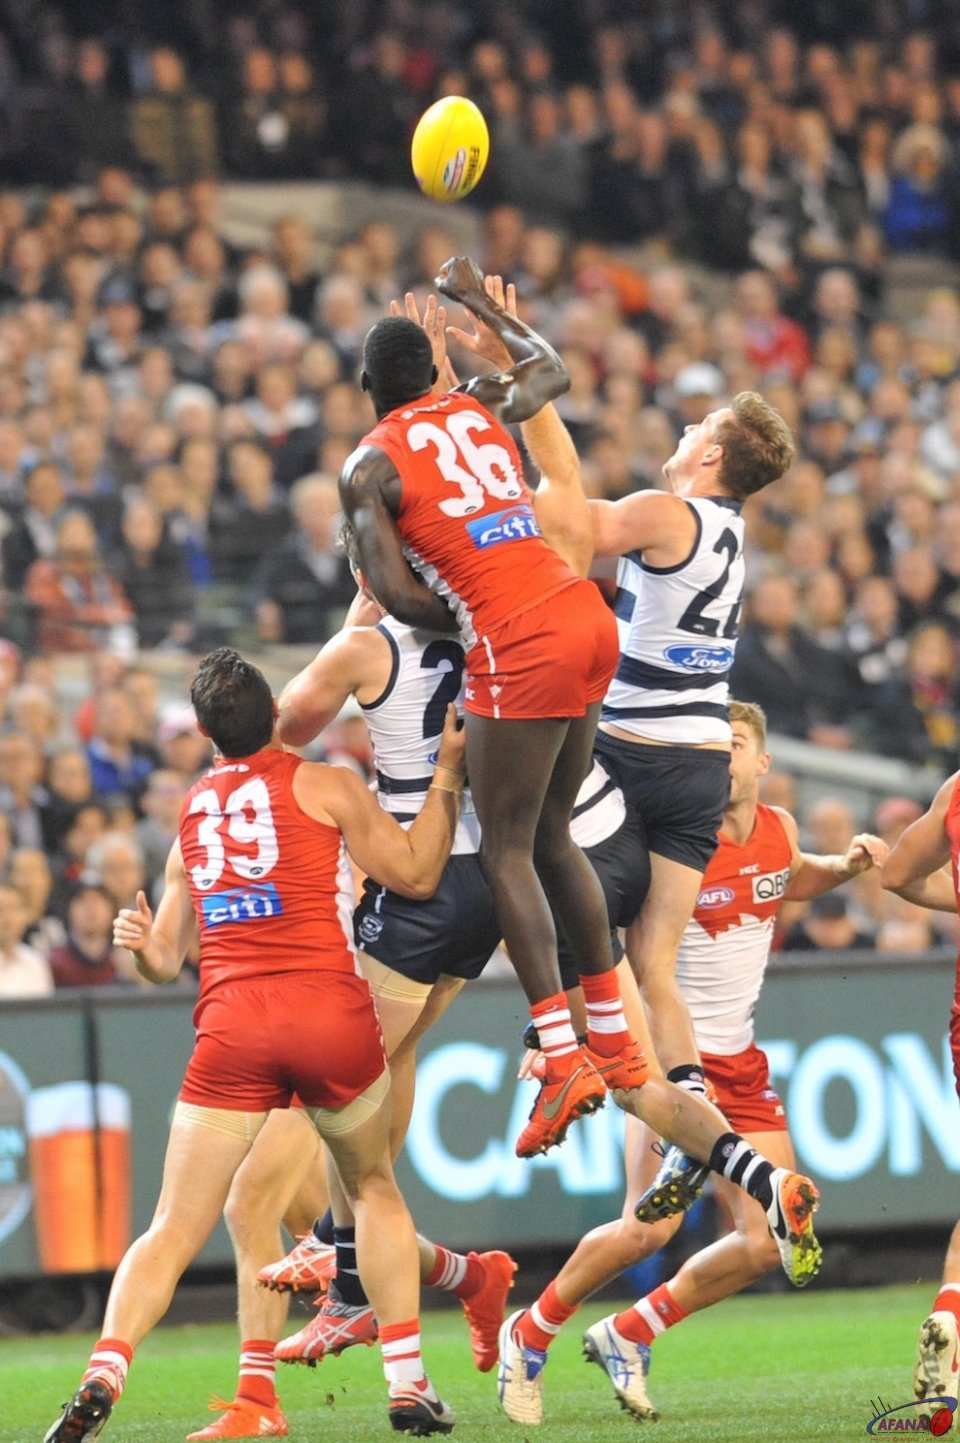 Aliir Alir above the pack spoils the long ball in